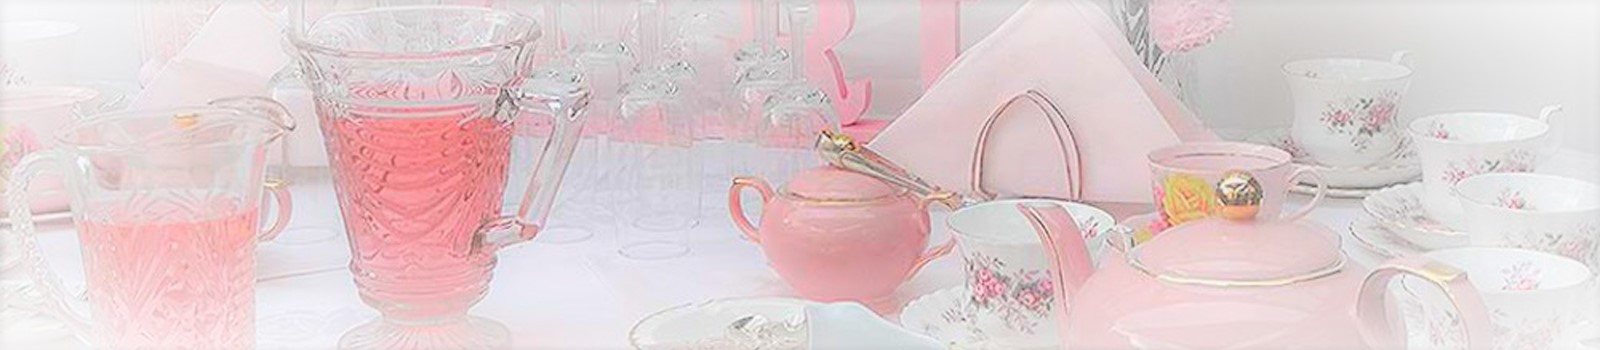 Baby-Shower-Vintage-China-Hire-Napier-NZ 1600x350